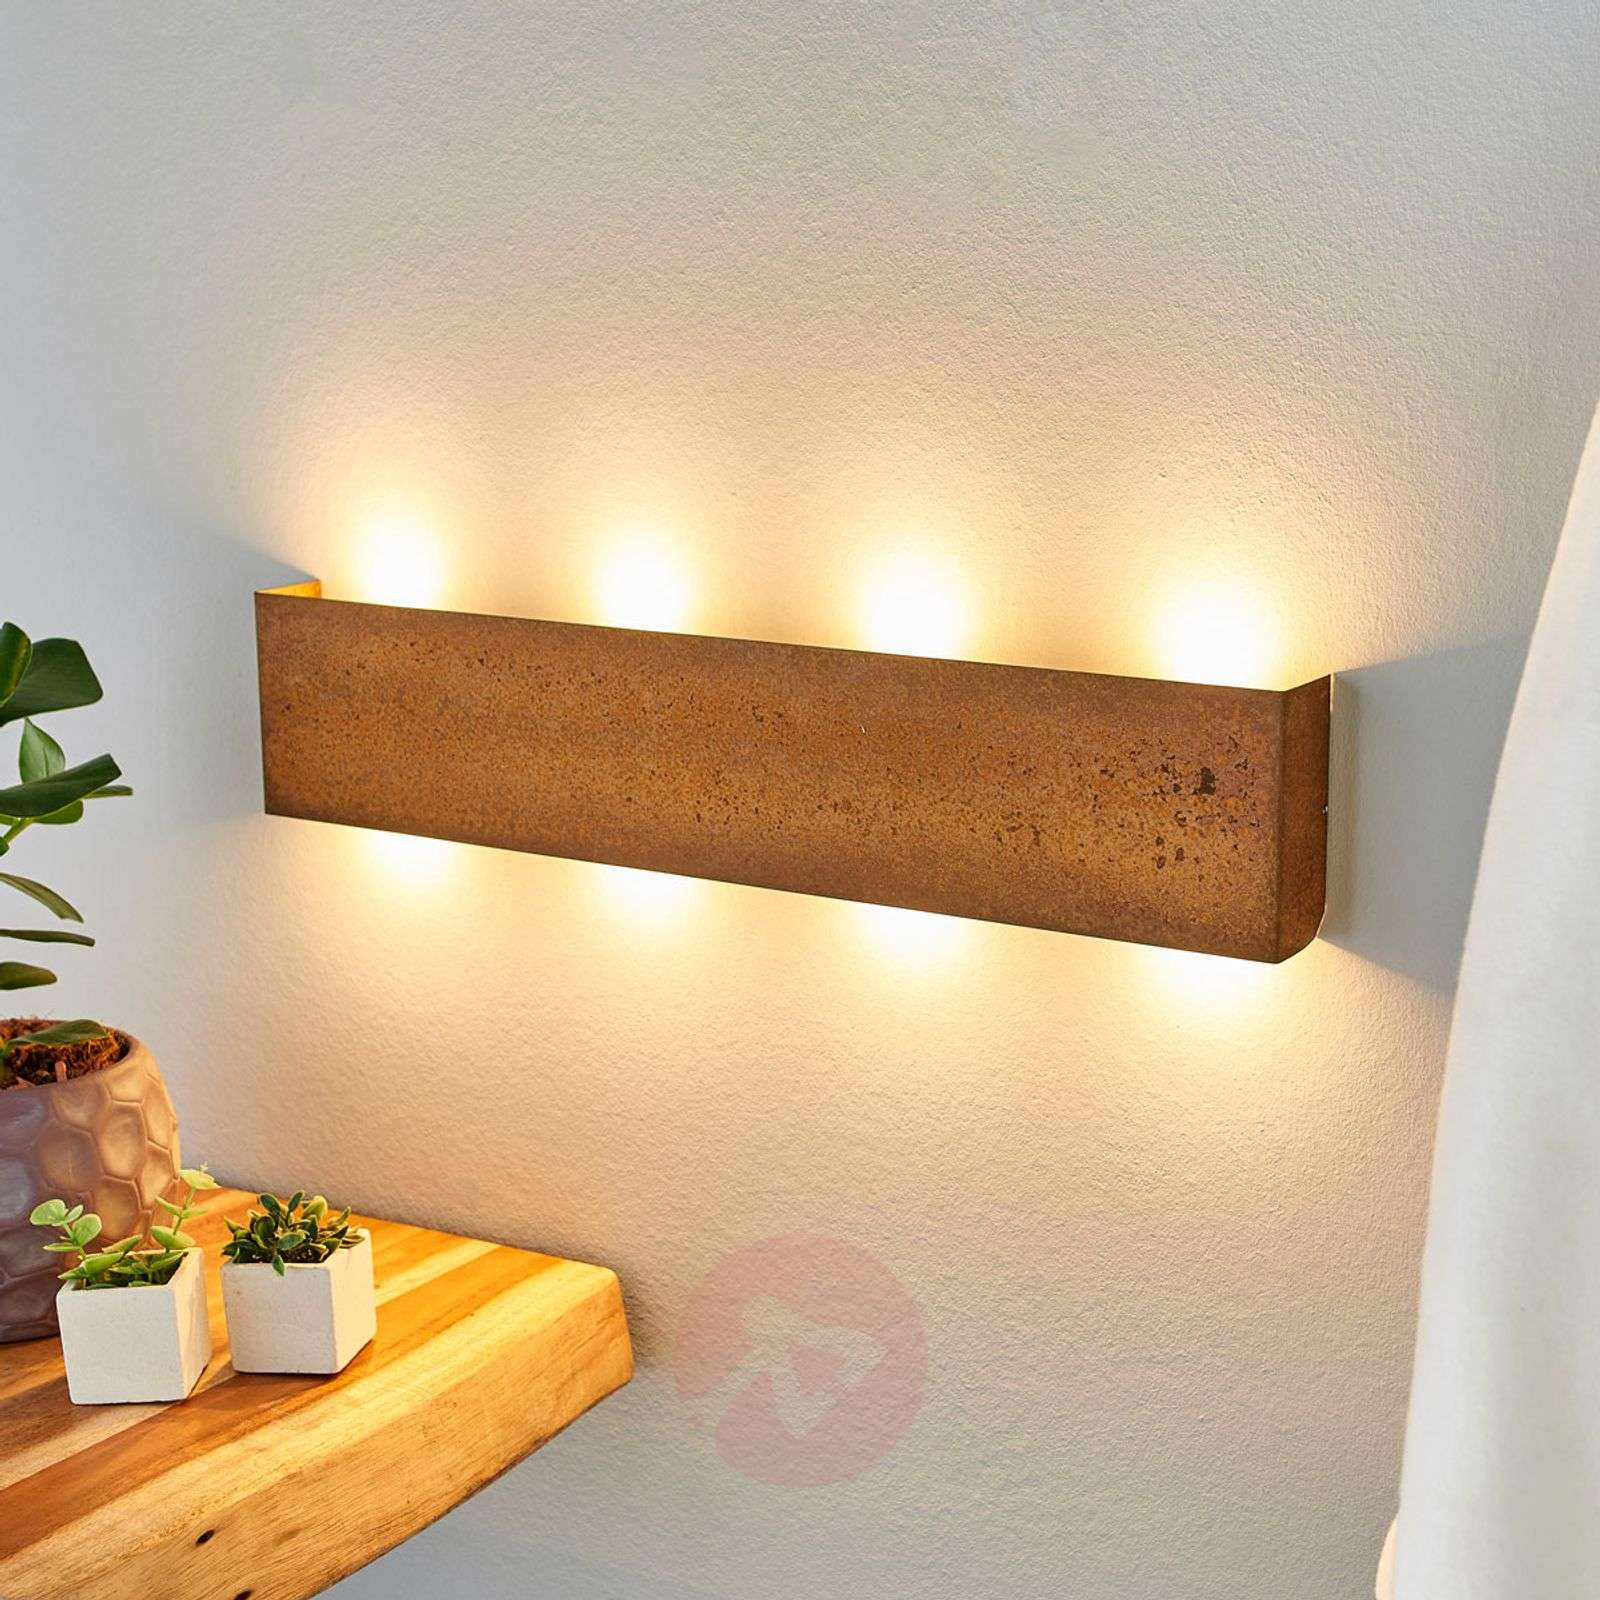 Plafoniera Da Esterno Ruggine : Acquista applique a led maja dimmerabile effetto ruggine lampade